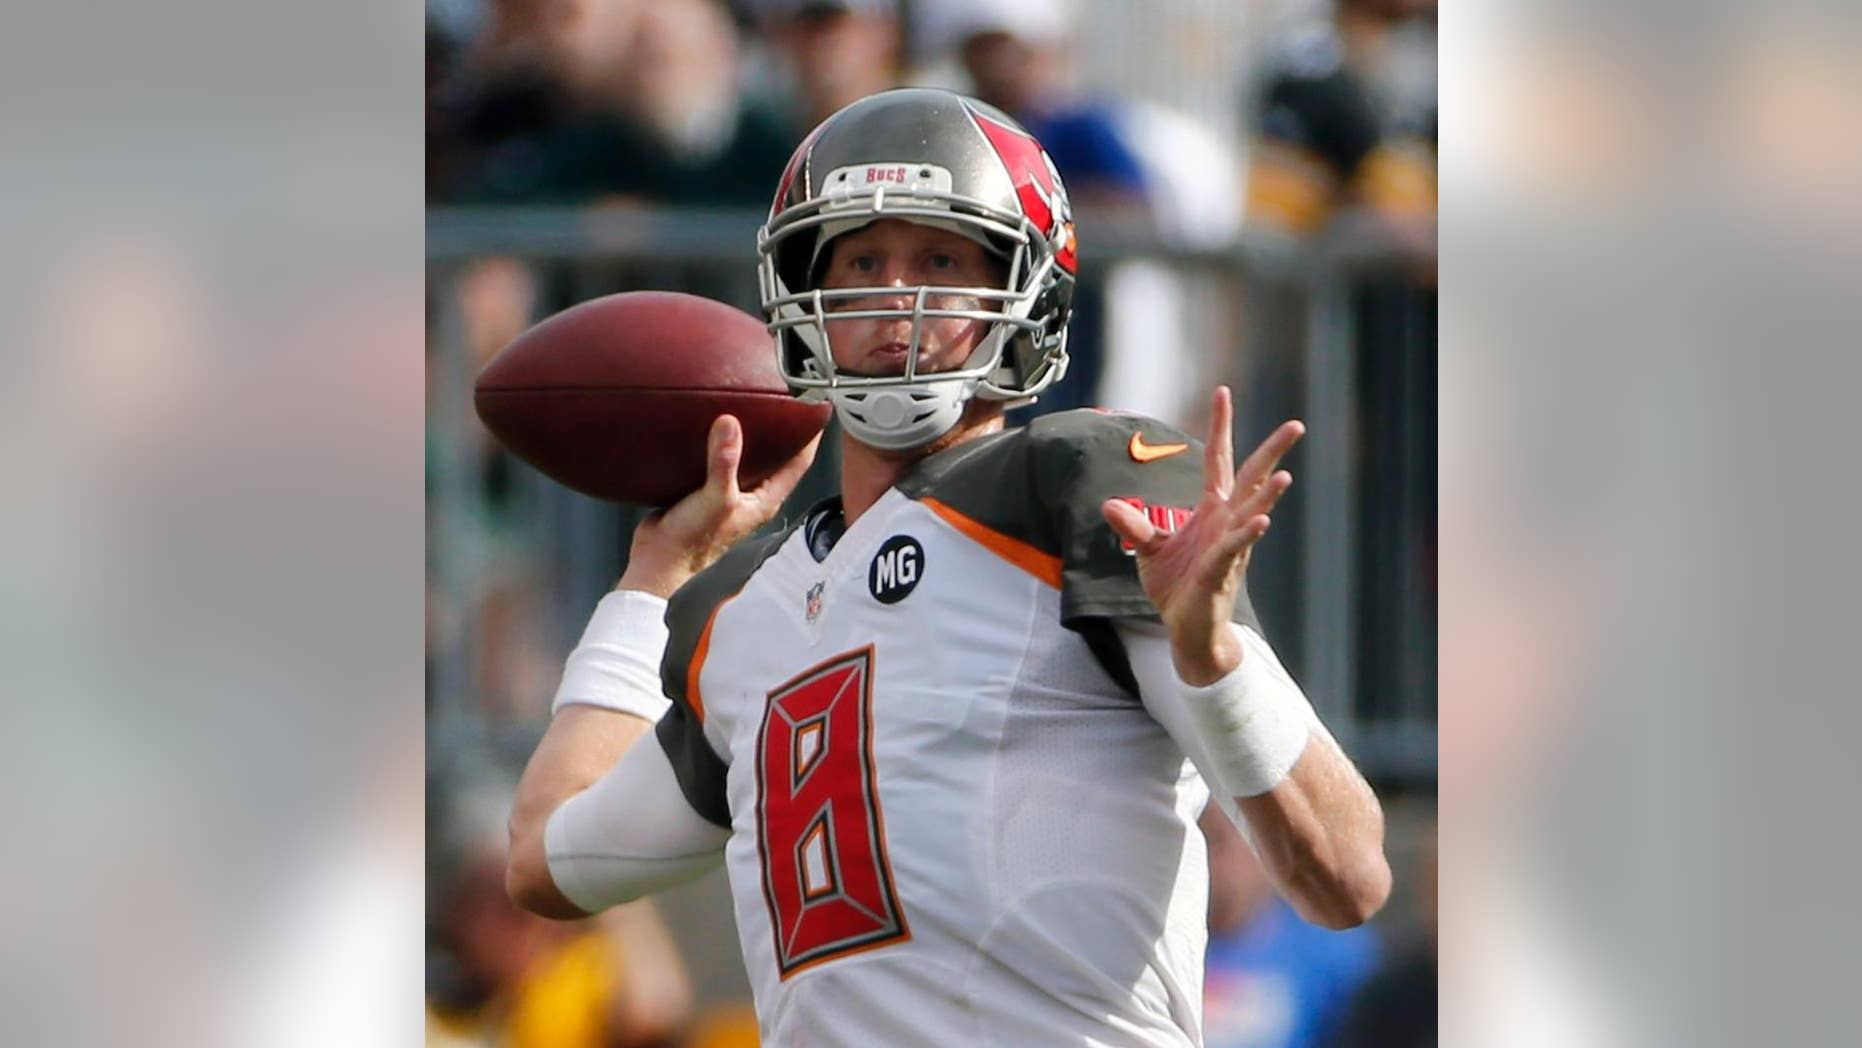 Tampa Bay Buccaneers quarterback Mike Glennon passes in the third quarter of an NFL football game against the Pittsburgh Steelers, Sunday, Sept. 28, 2014, in Pittsburgh. The Buccaneers won 27-24. (AP Photo/Gene J. Puskar)